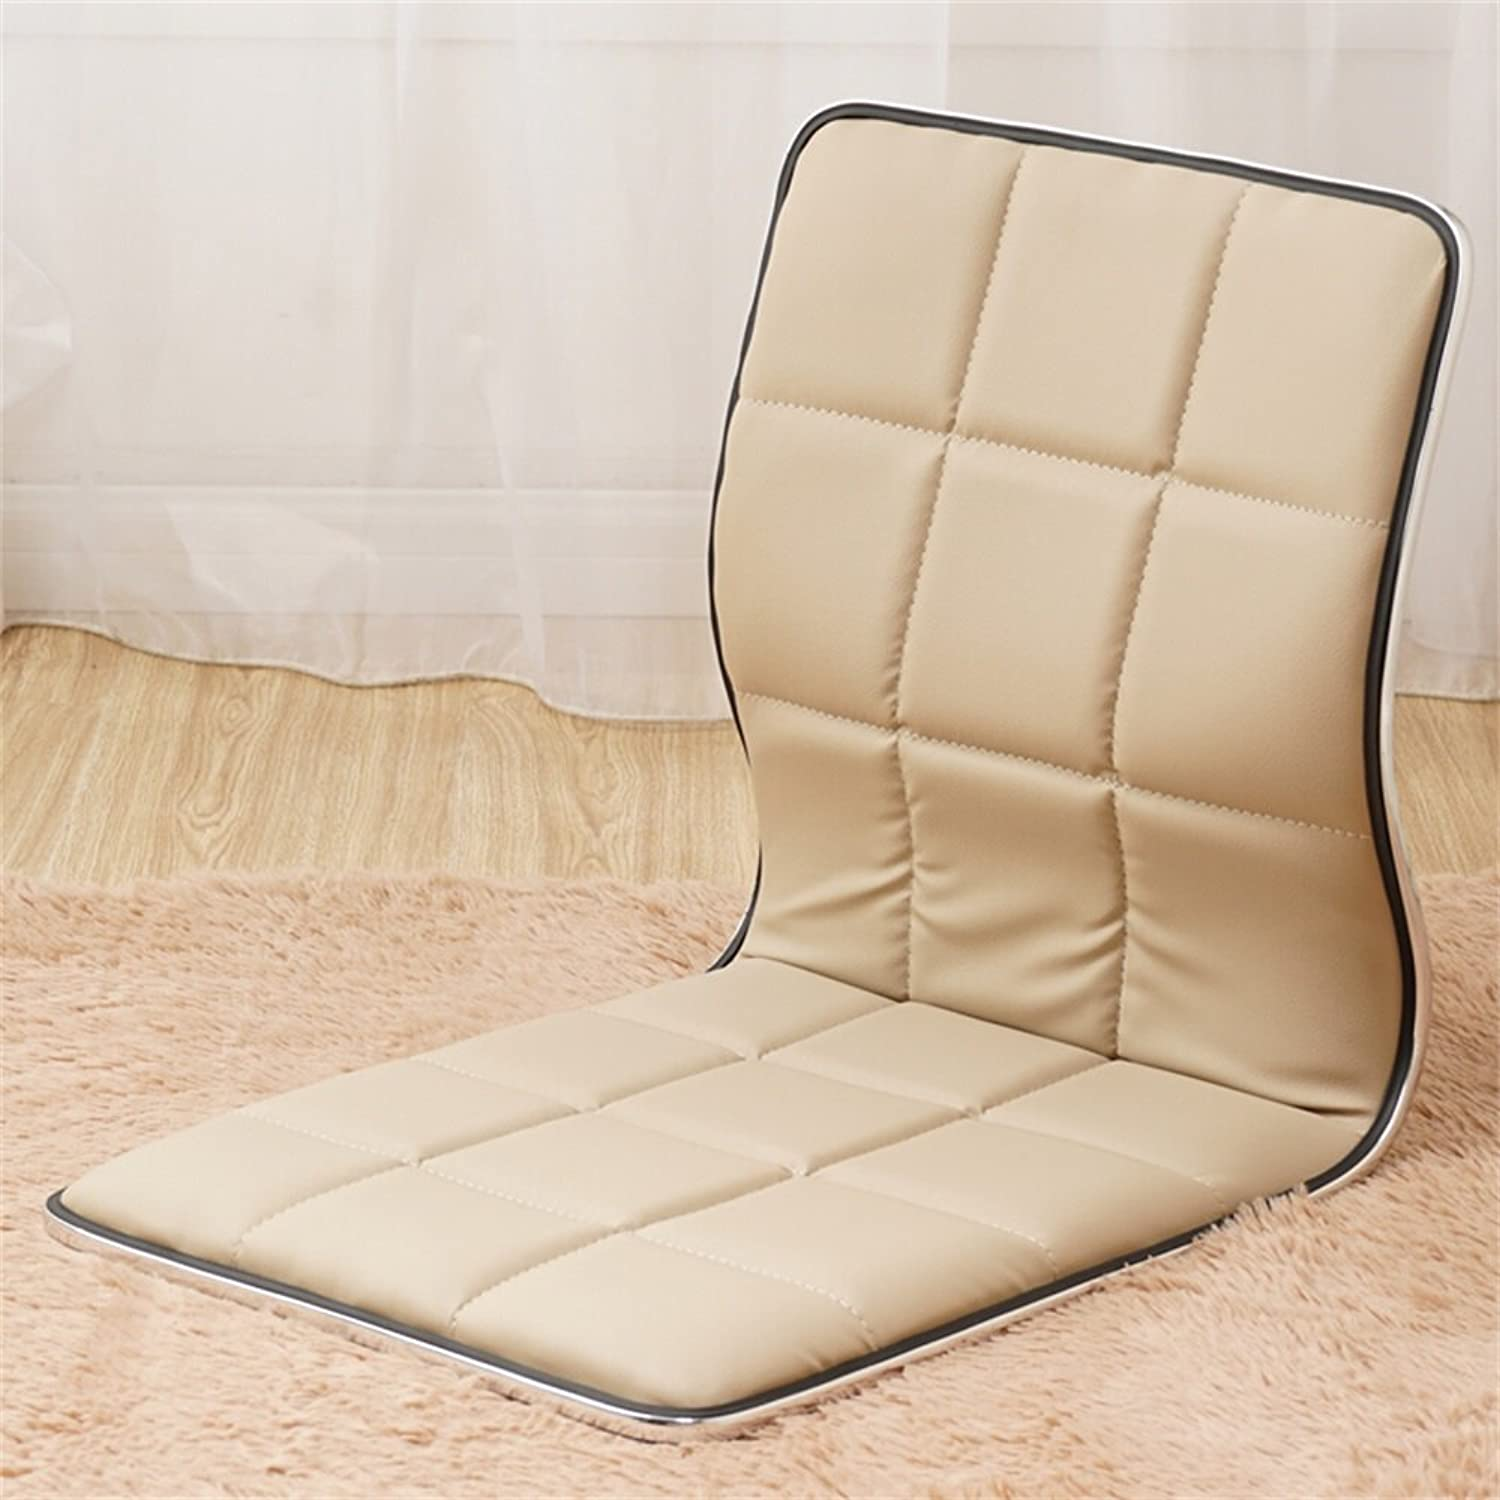 DQMSB Floor Chair Lazy Sofa Japanese Style Wooden Single Bed Legless Dormitory Computer Chair Chair (color   Beige)